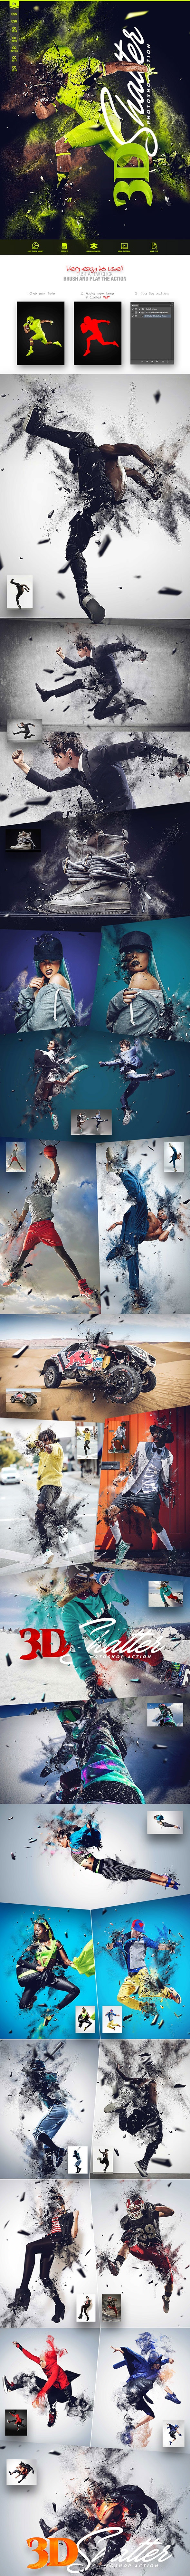 3D Shatter Photoshop Action CS5+ - Photo Effects Actions